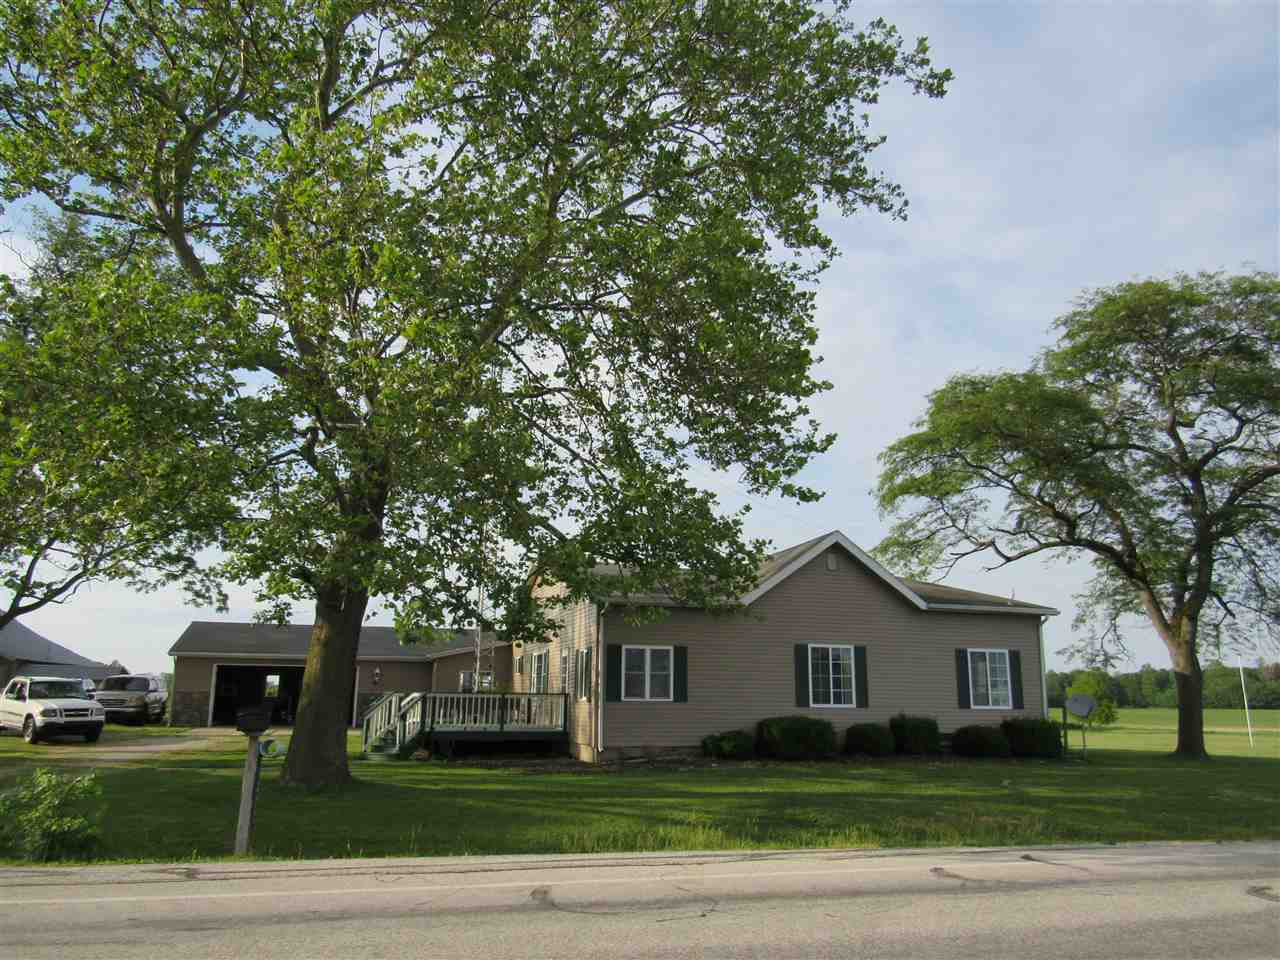 8142 W 600 South, Andrews, IN 46702